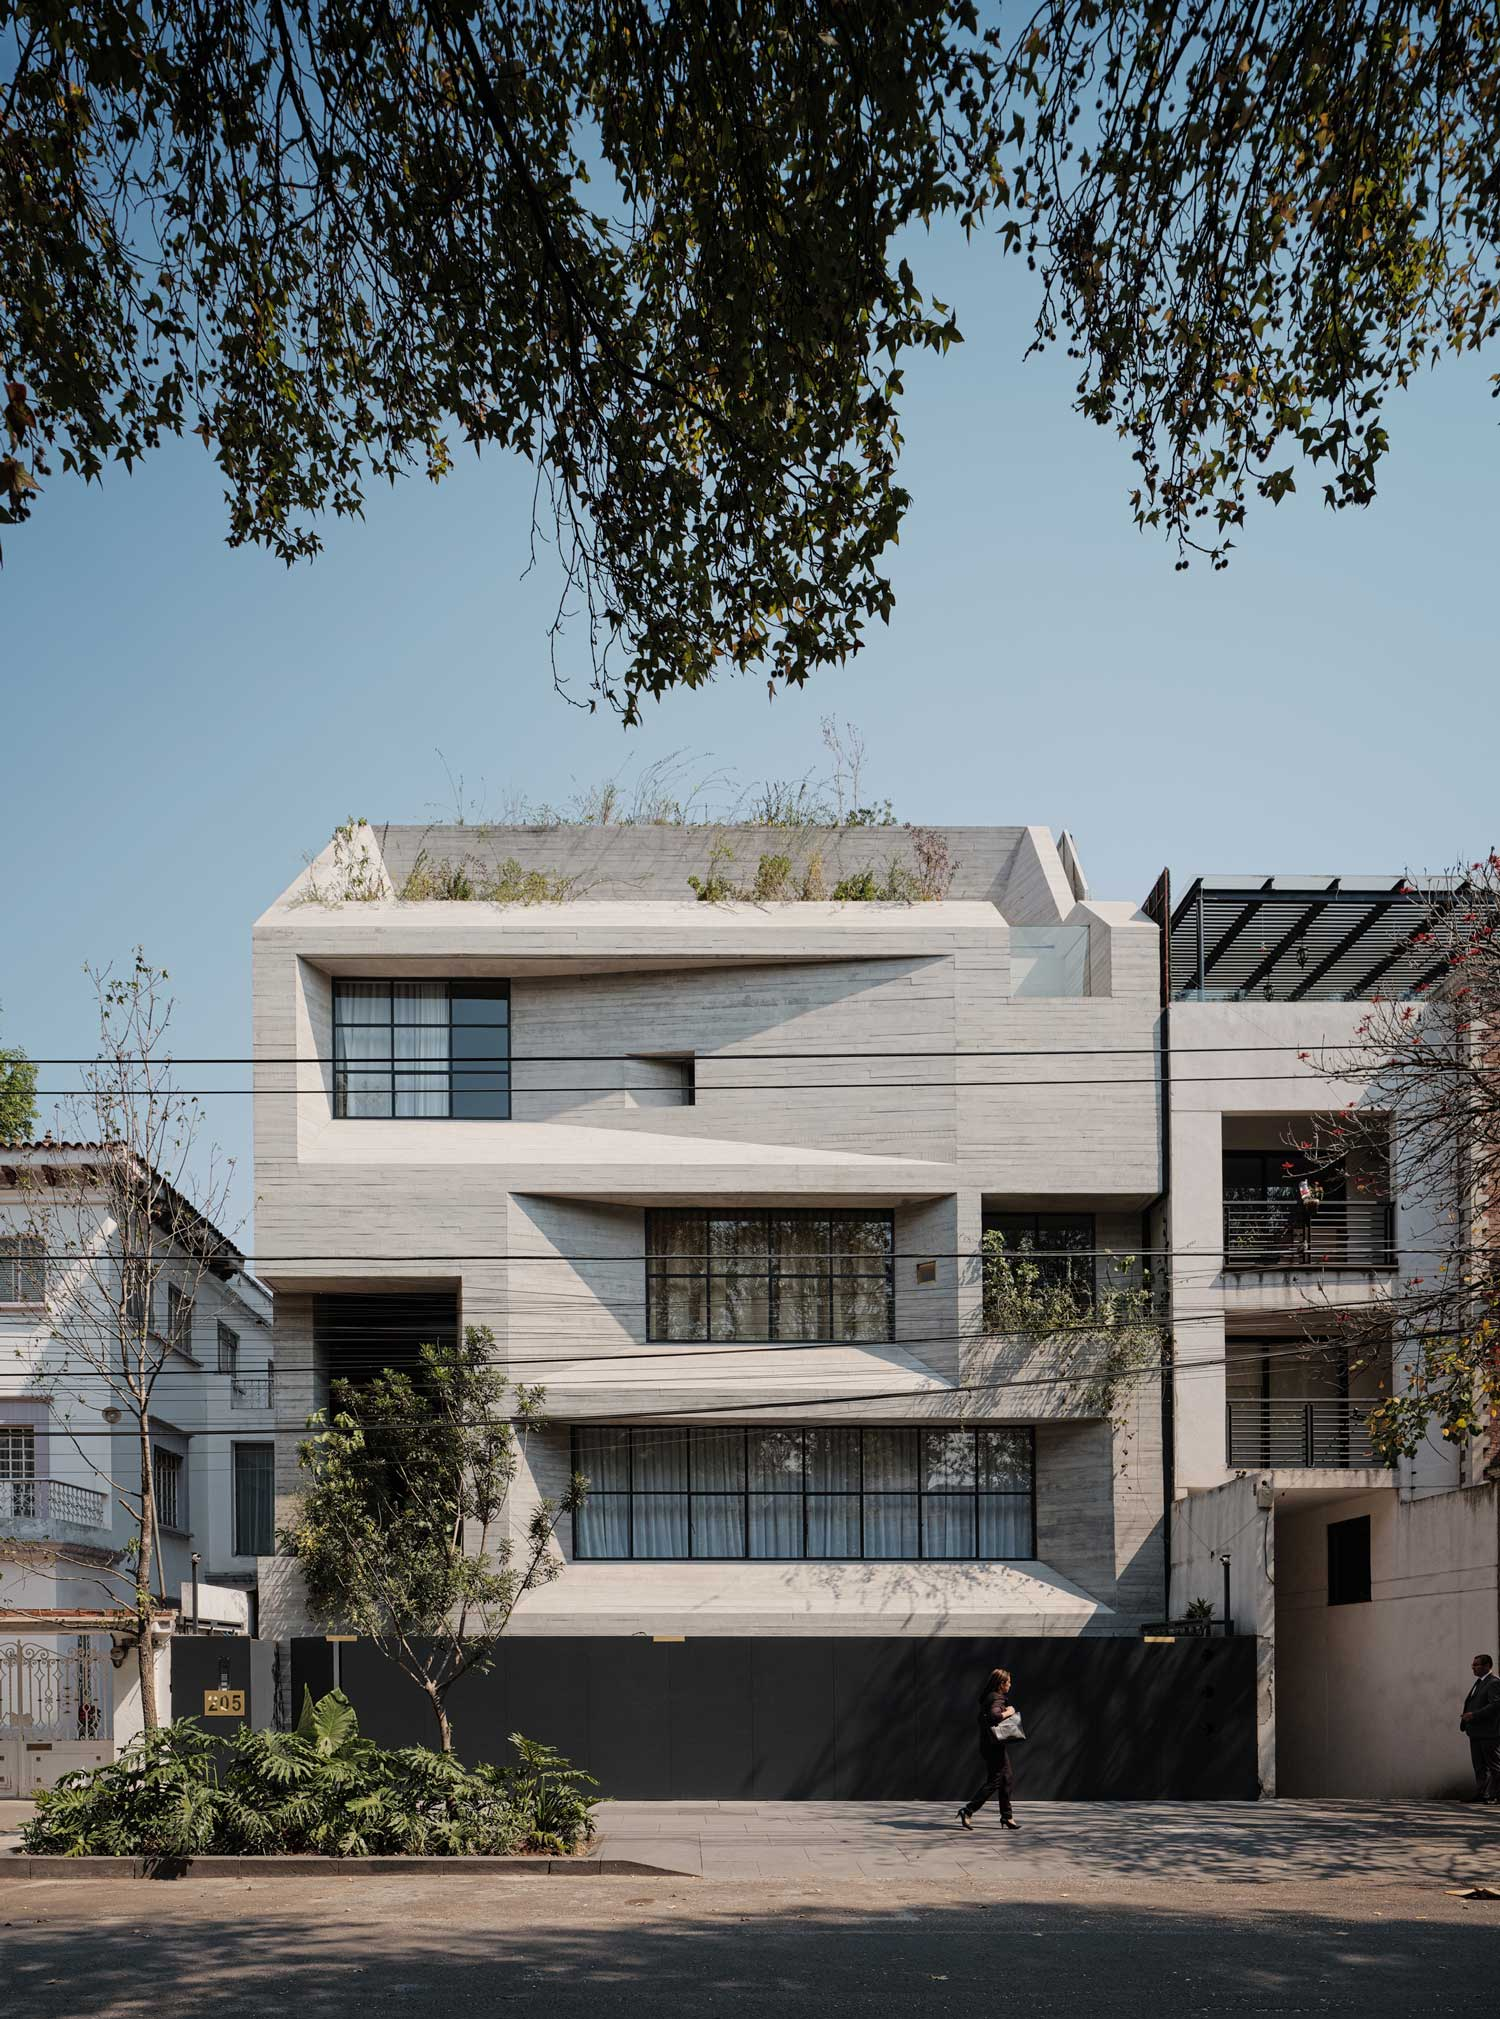 Tennyson 205 Apartment Building in Mexico City by Studio Rick Joy.